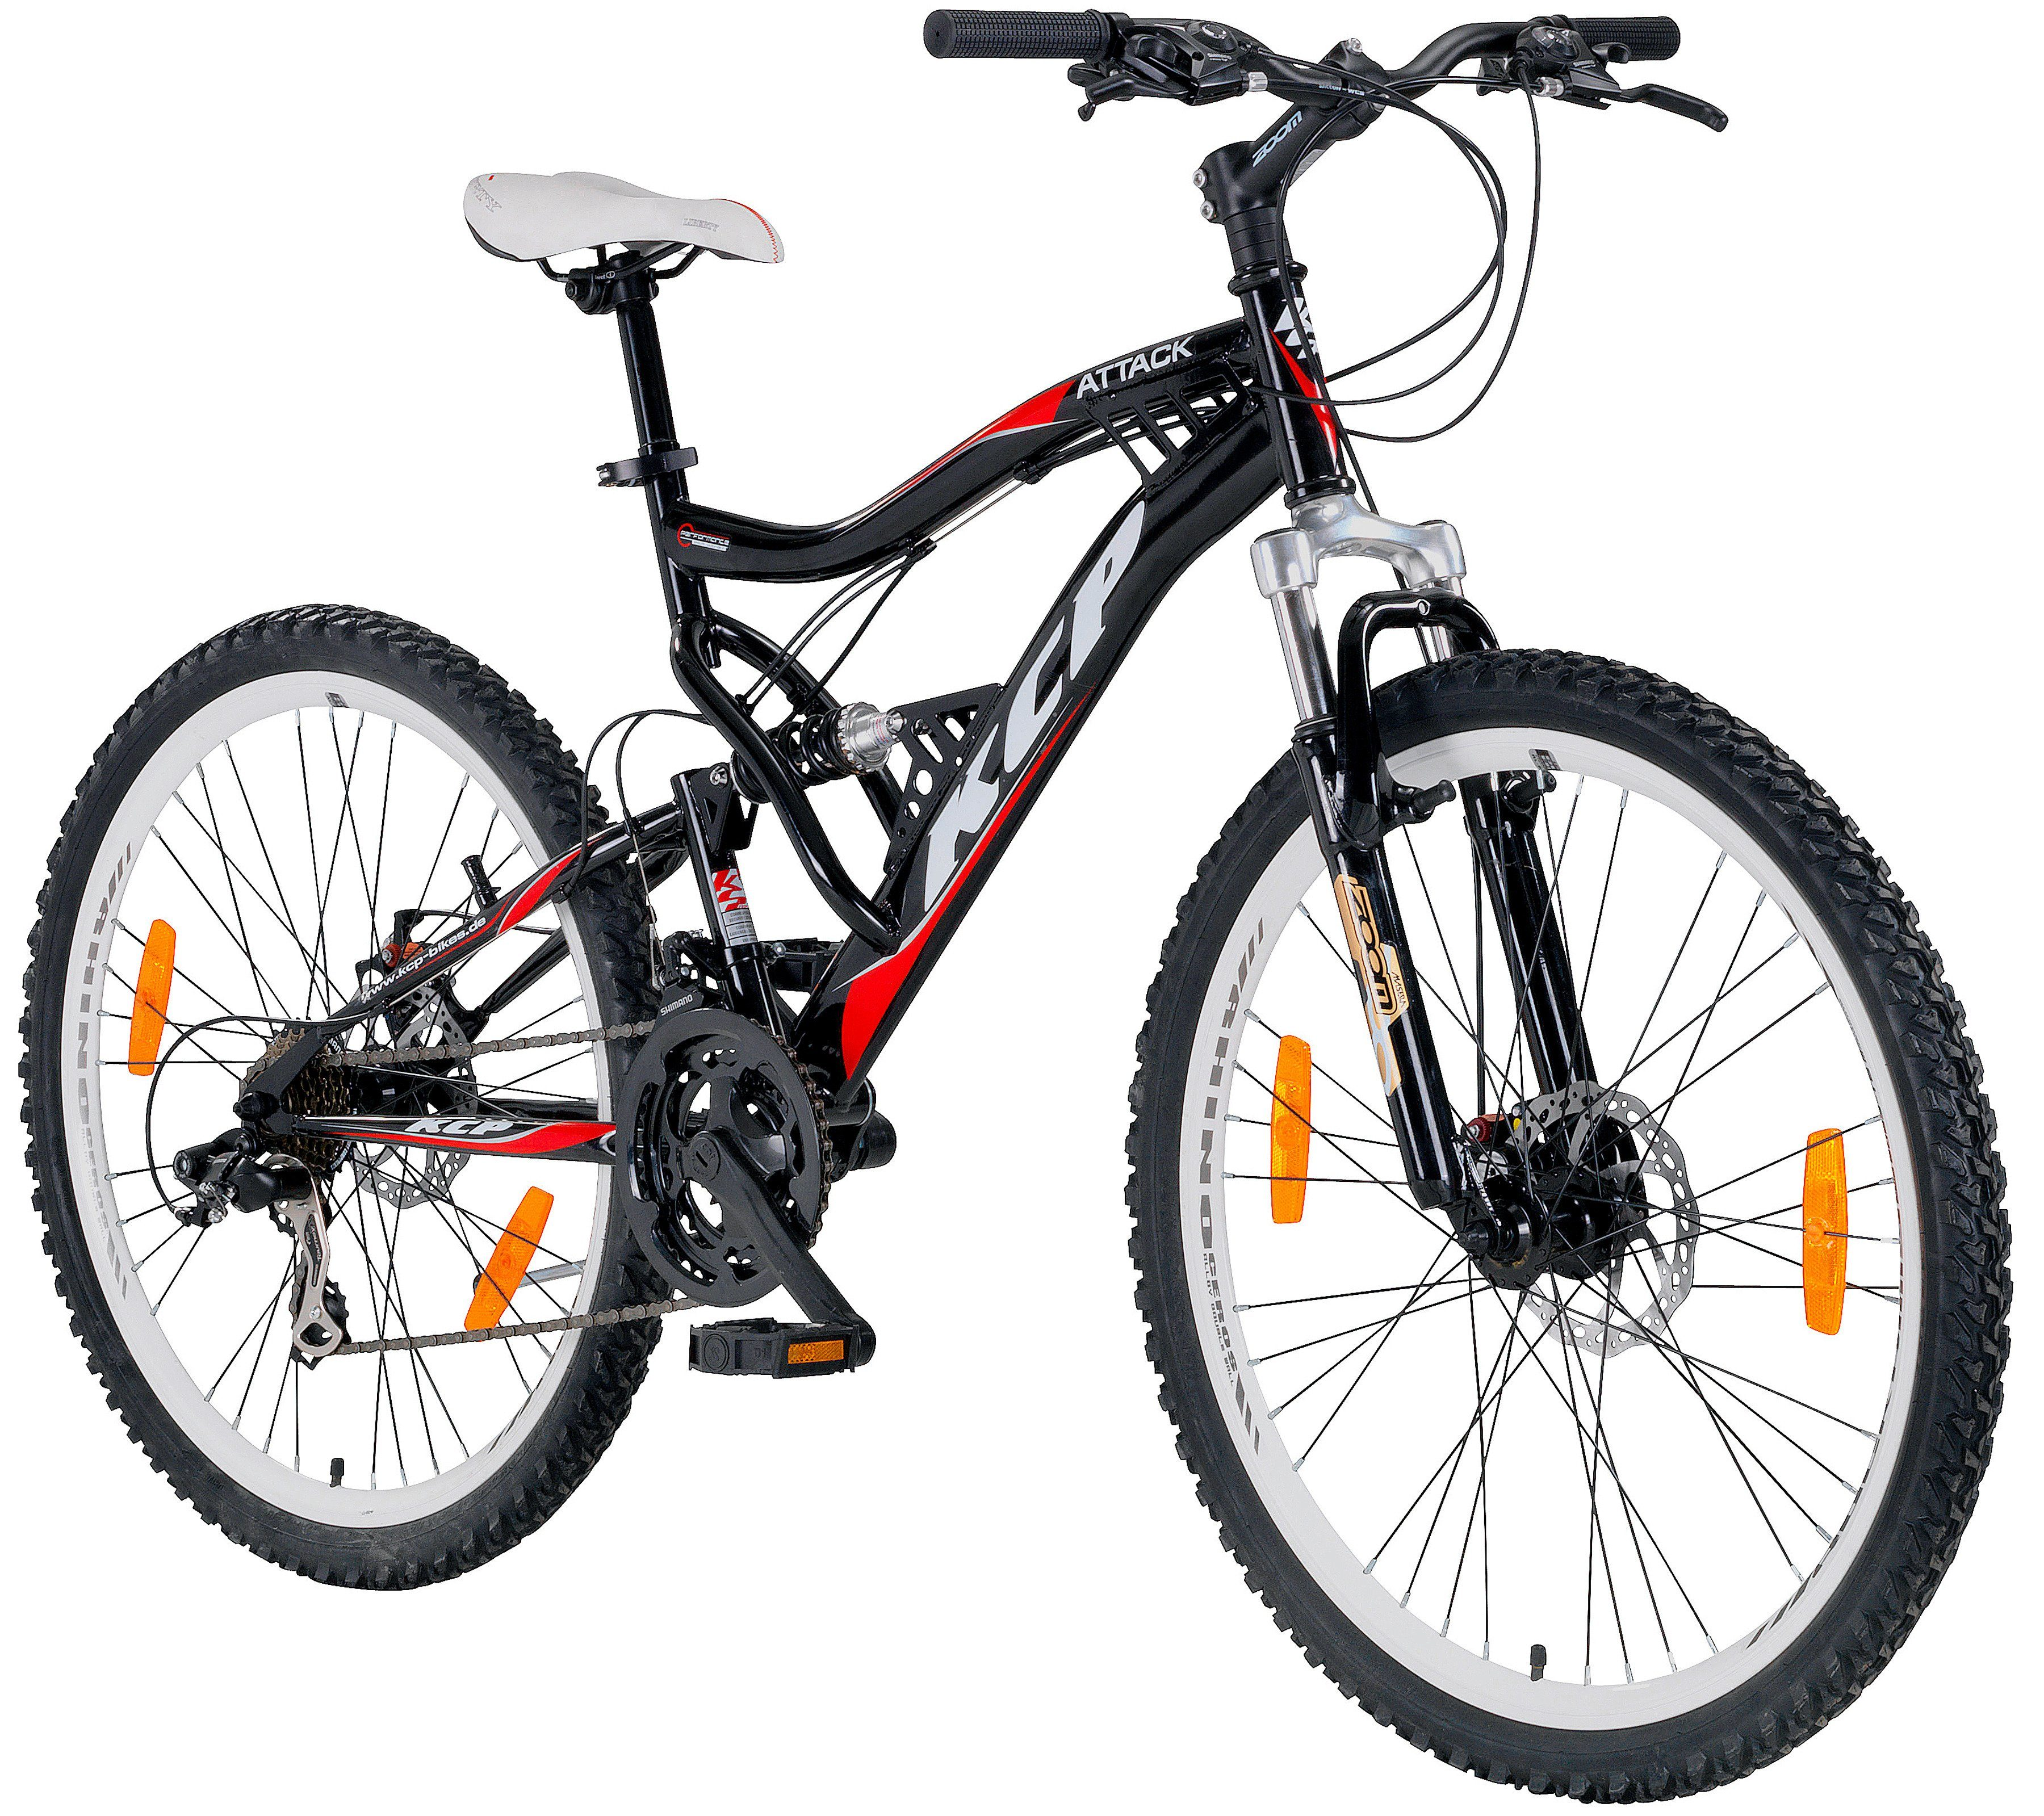 KCP Mountainbike »ATTACK, 66,04 cm (26 Zoll)«